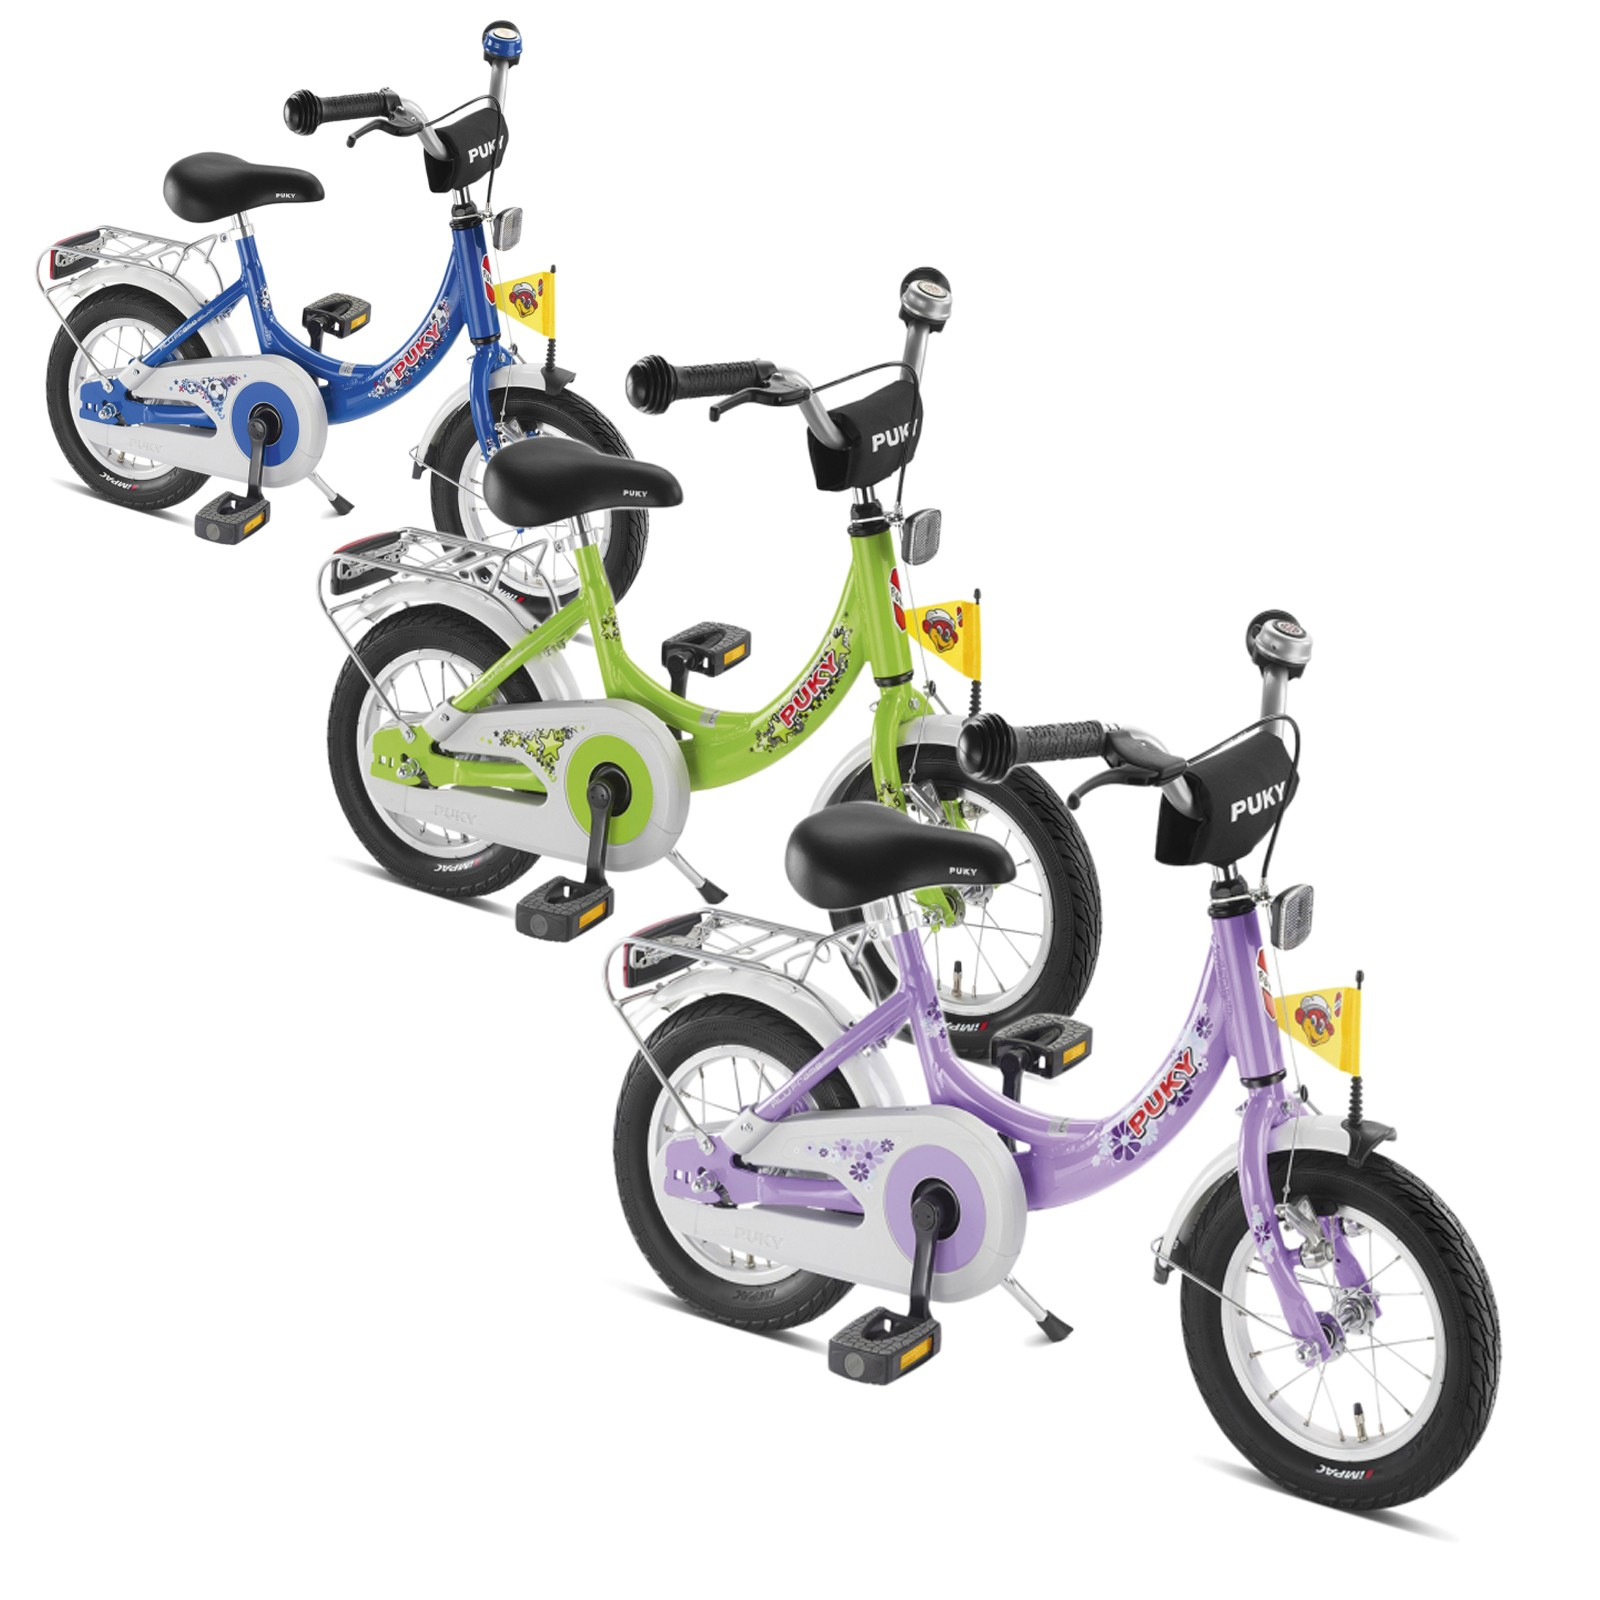 Puky Zl 16 Alu Children S Bike Buy With 22 Customer Ratings